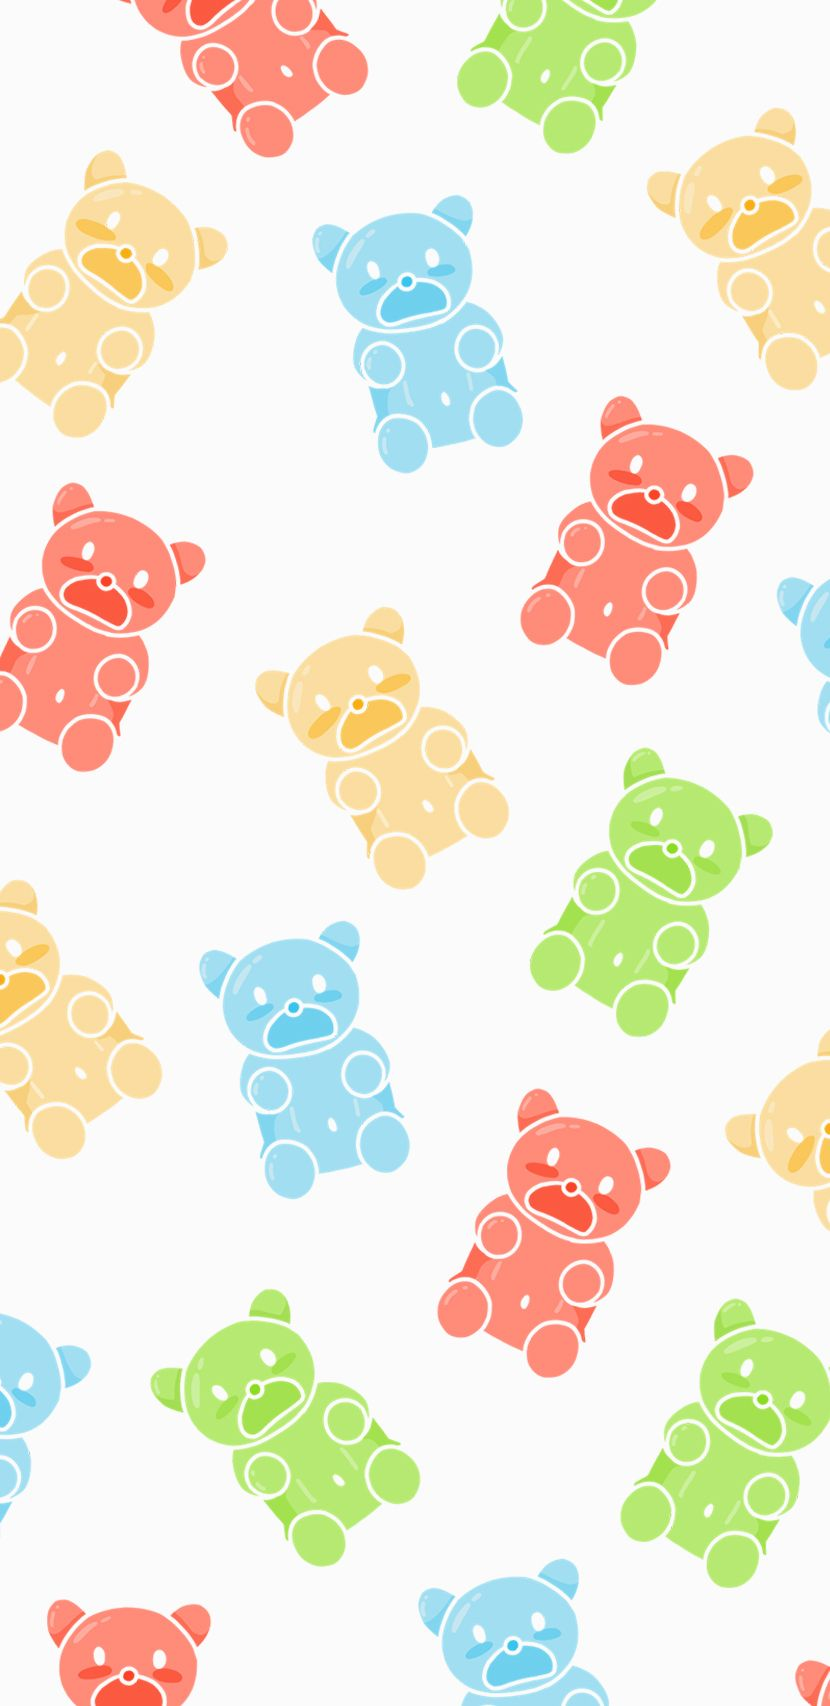 Gummy Bears Candies Sweets Pastel Colors Wallpaper